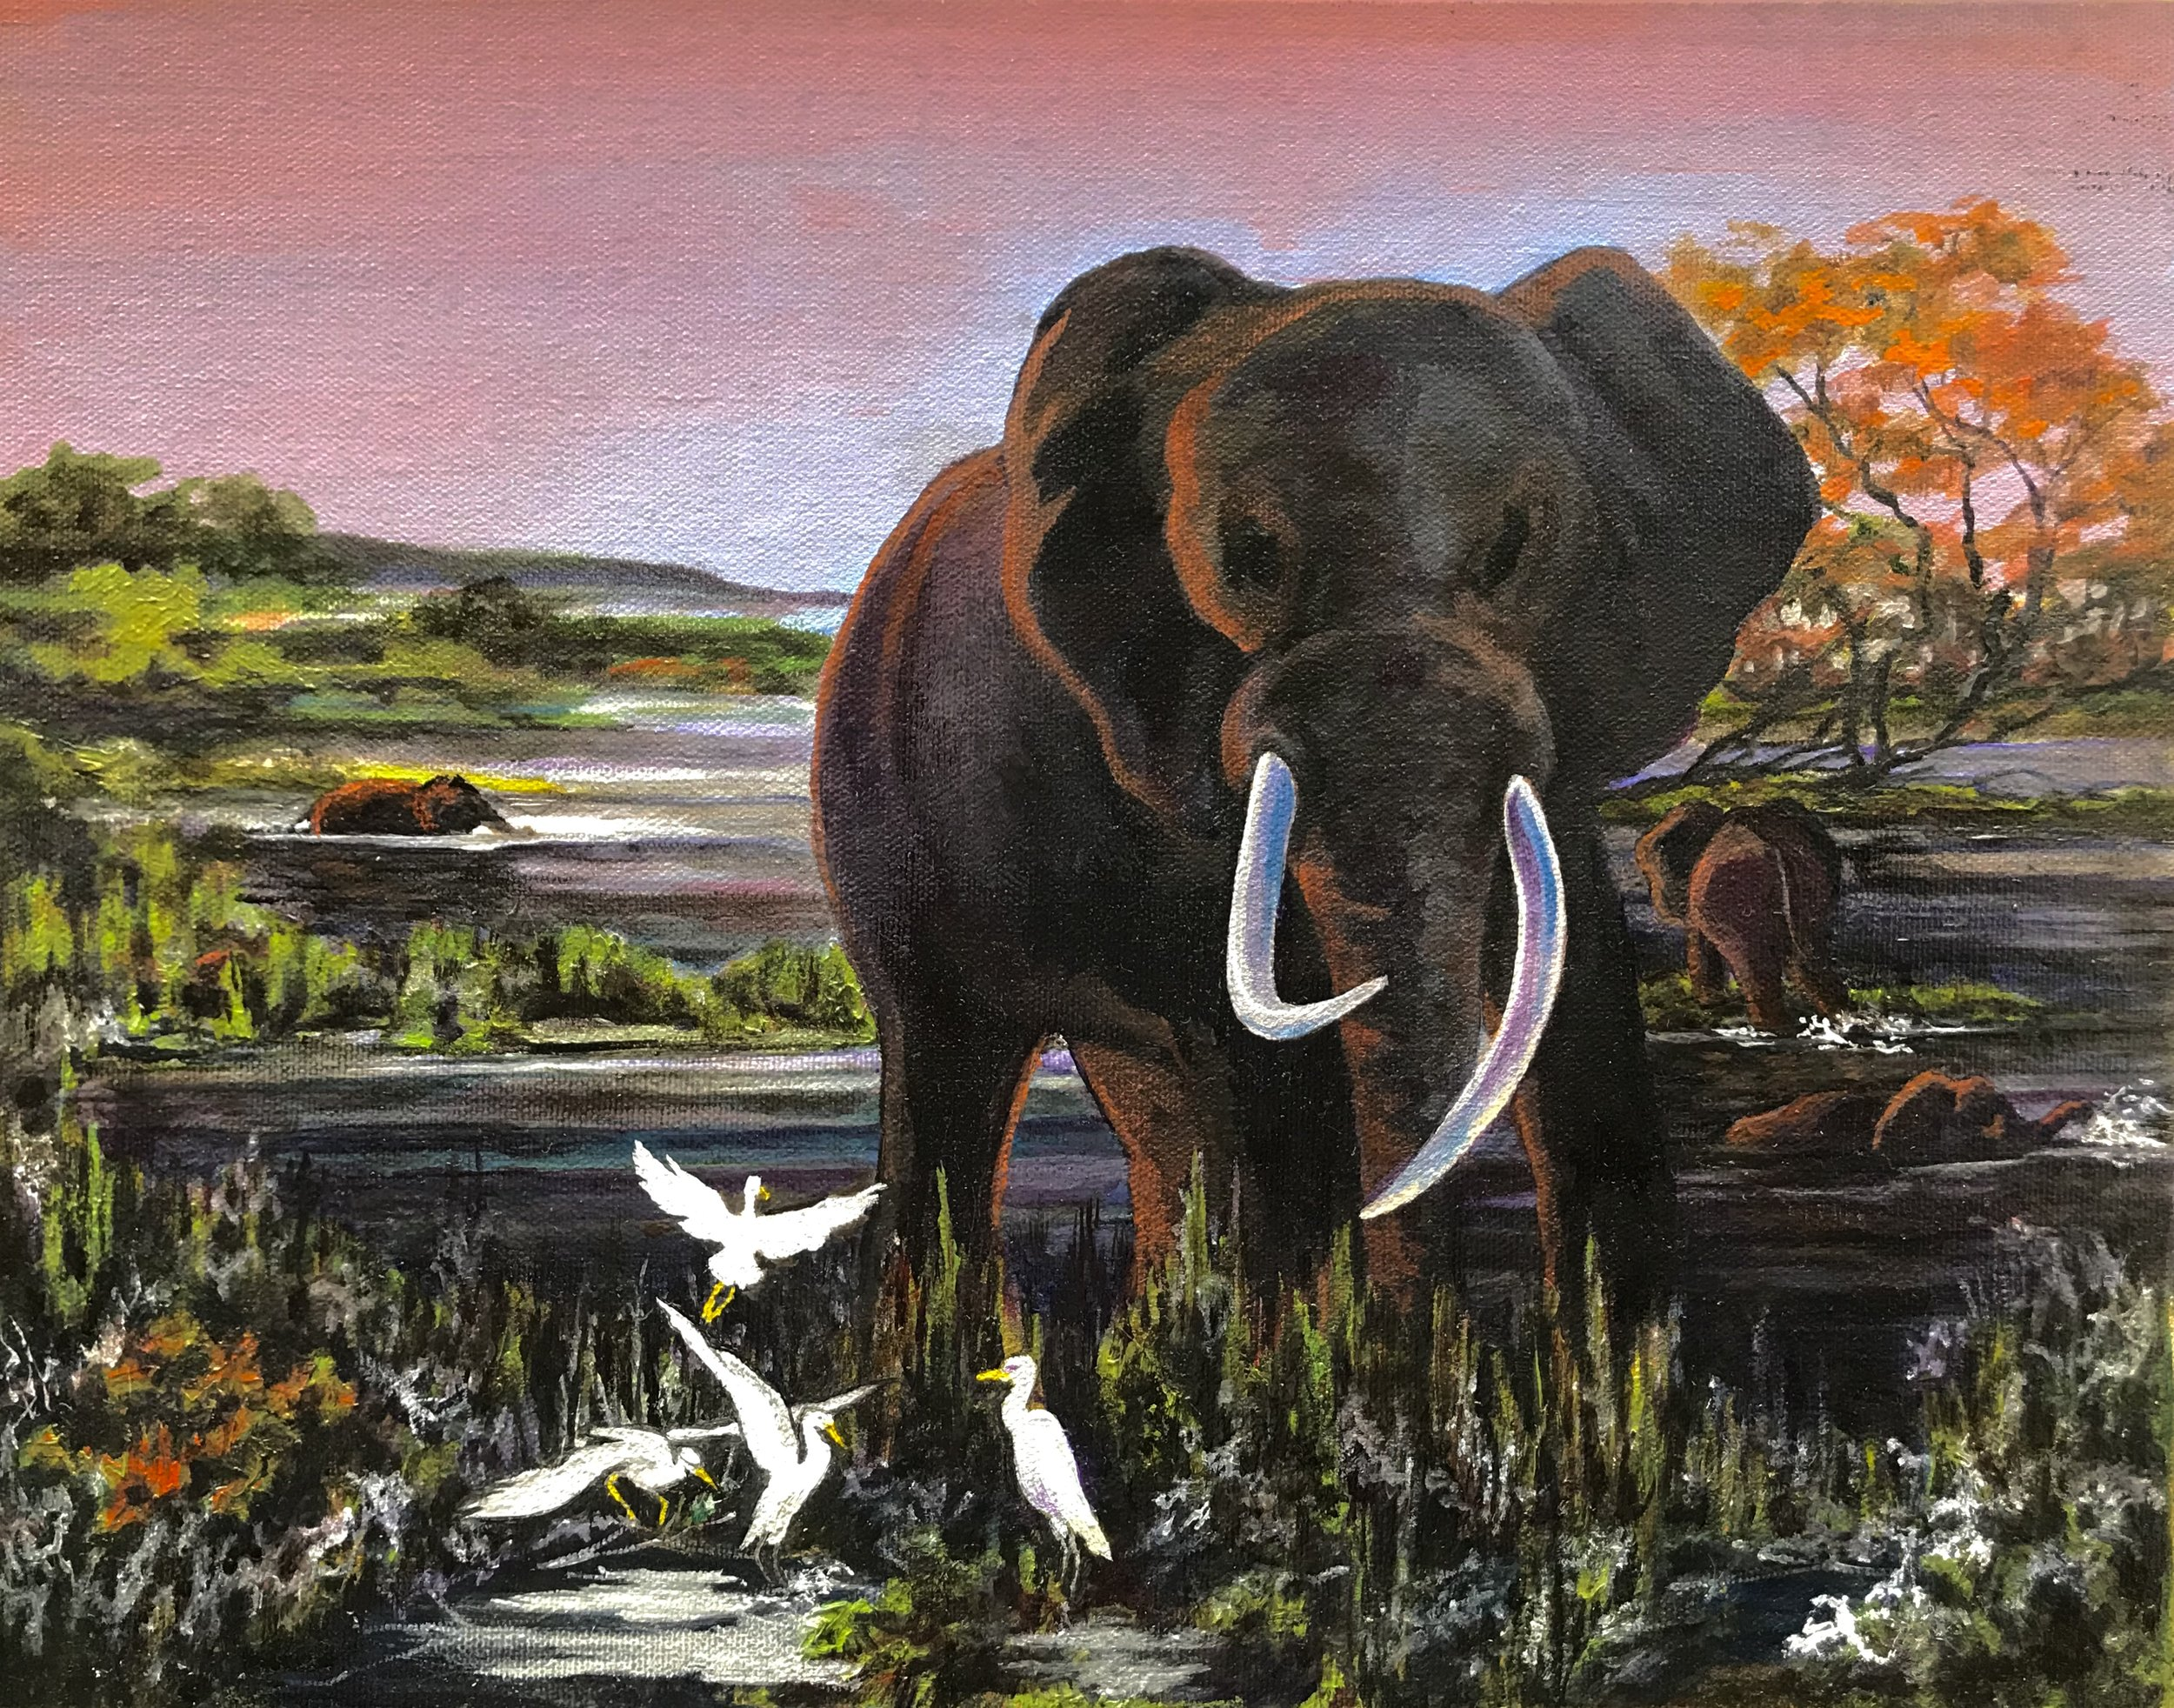 Untitled Elephant  Zambia, Africa  11 x 14  Oil on linen  Cheri GInsburg ©